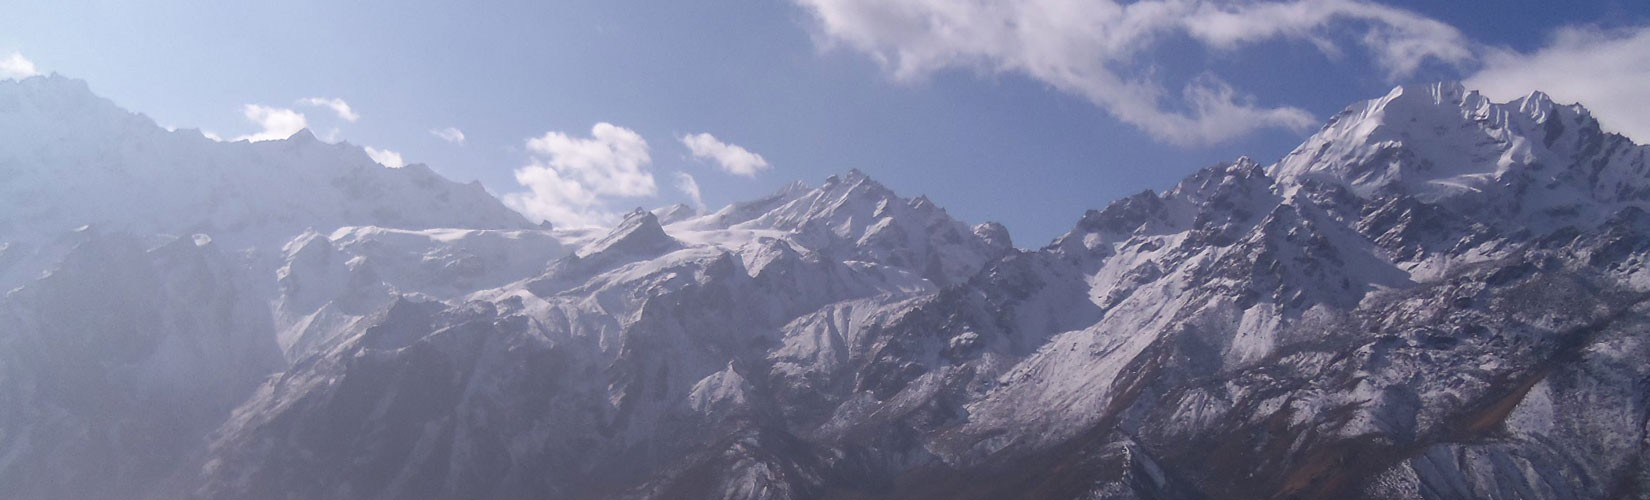 Langtang and Gosaikunda Pass Trek gives you an experience of trekking with an essence of cultural outlook of Nepal.